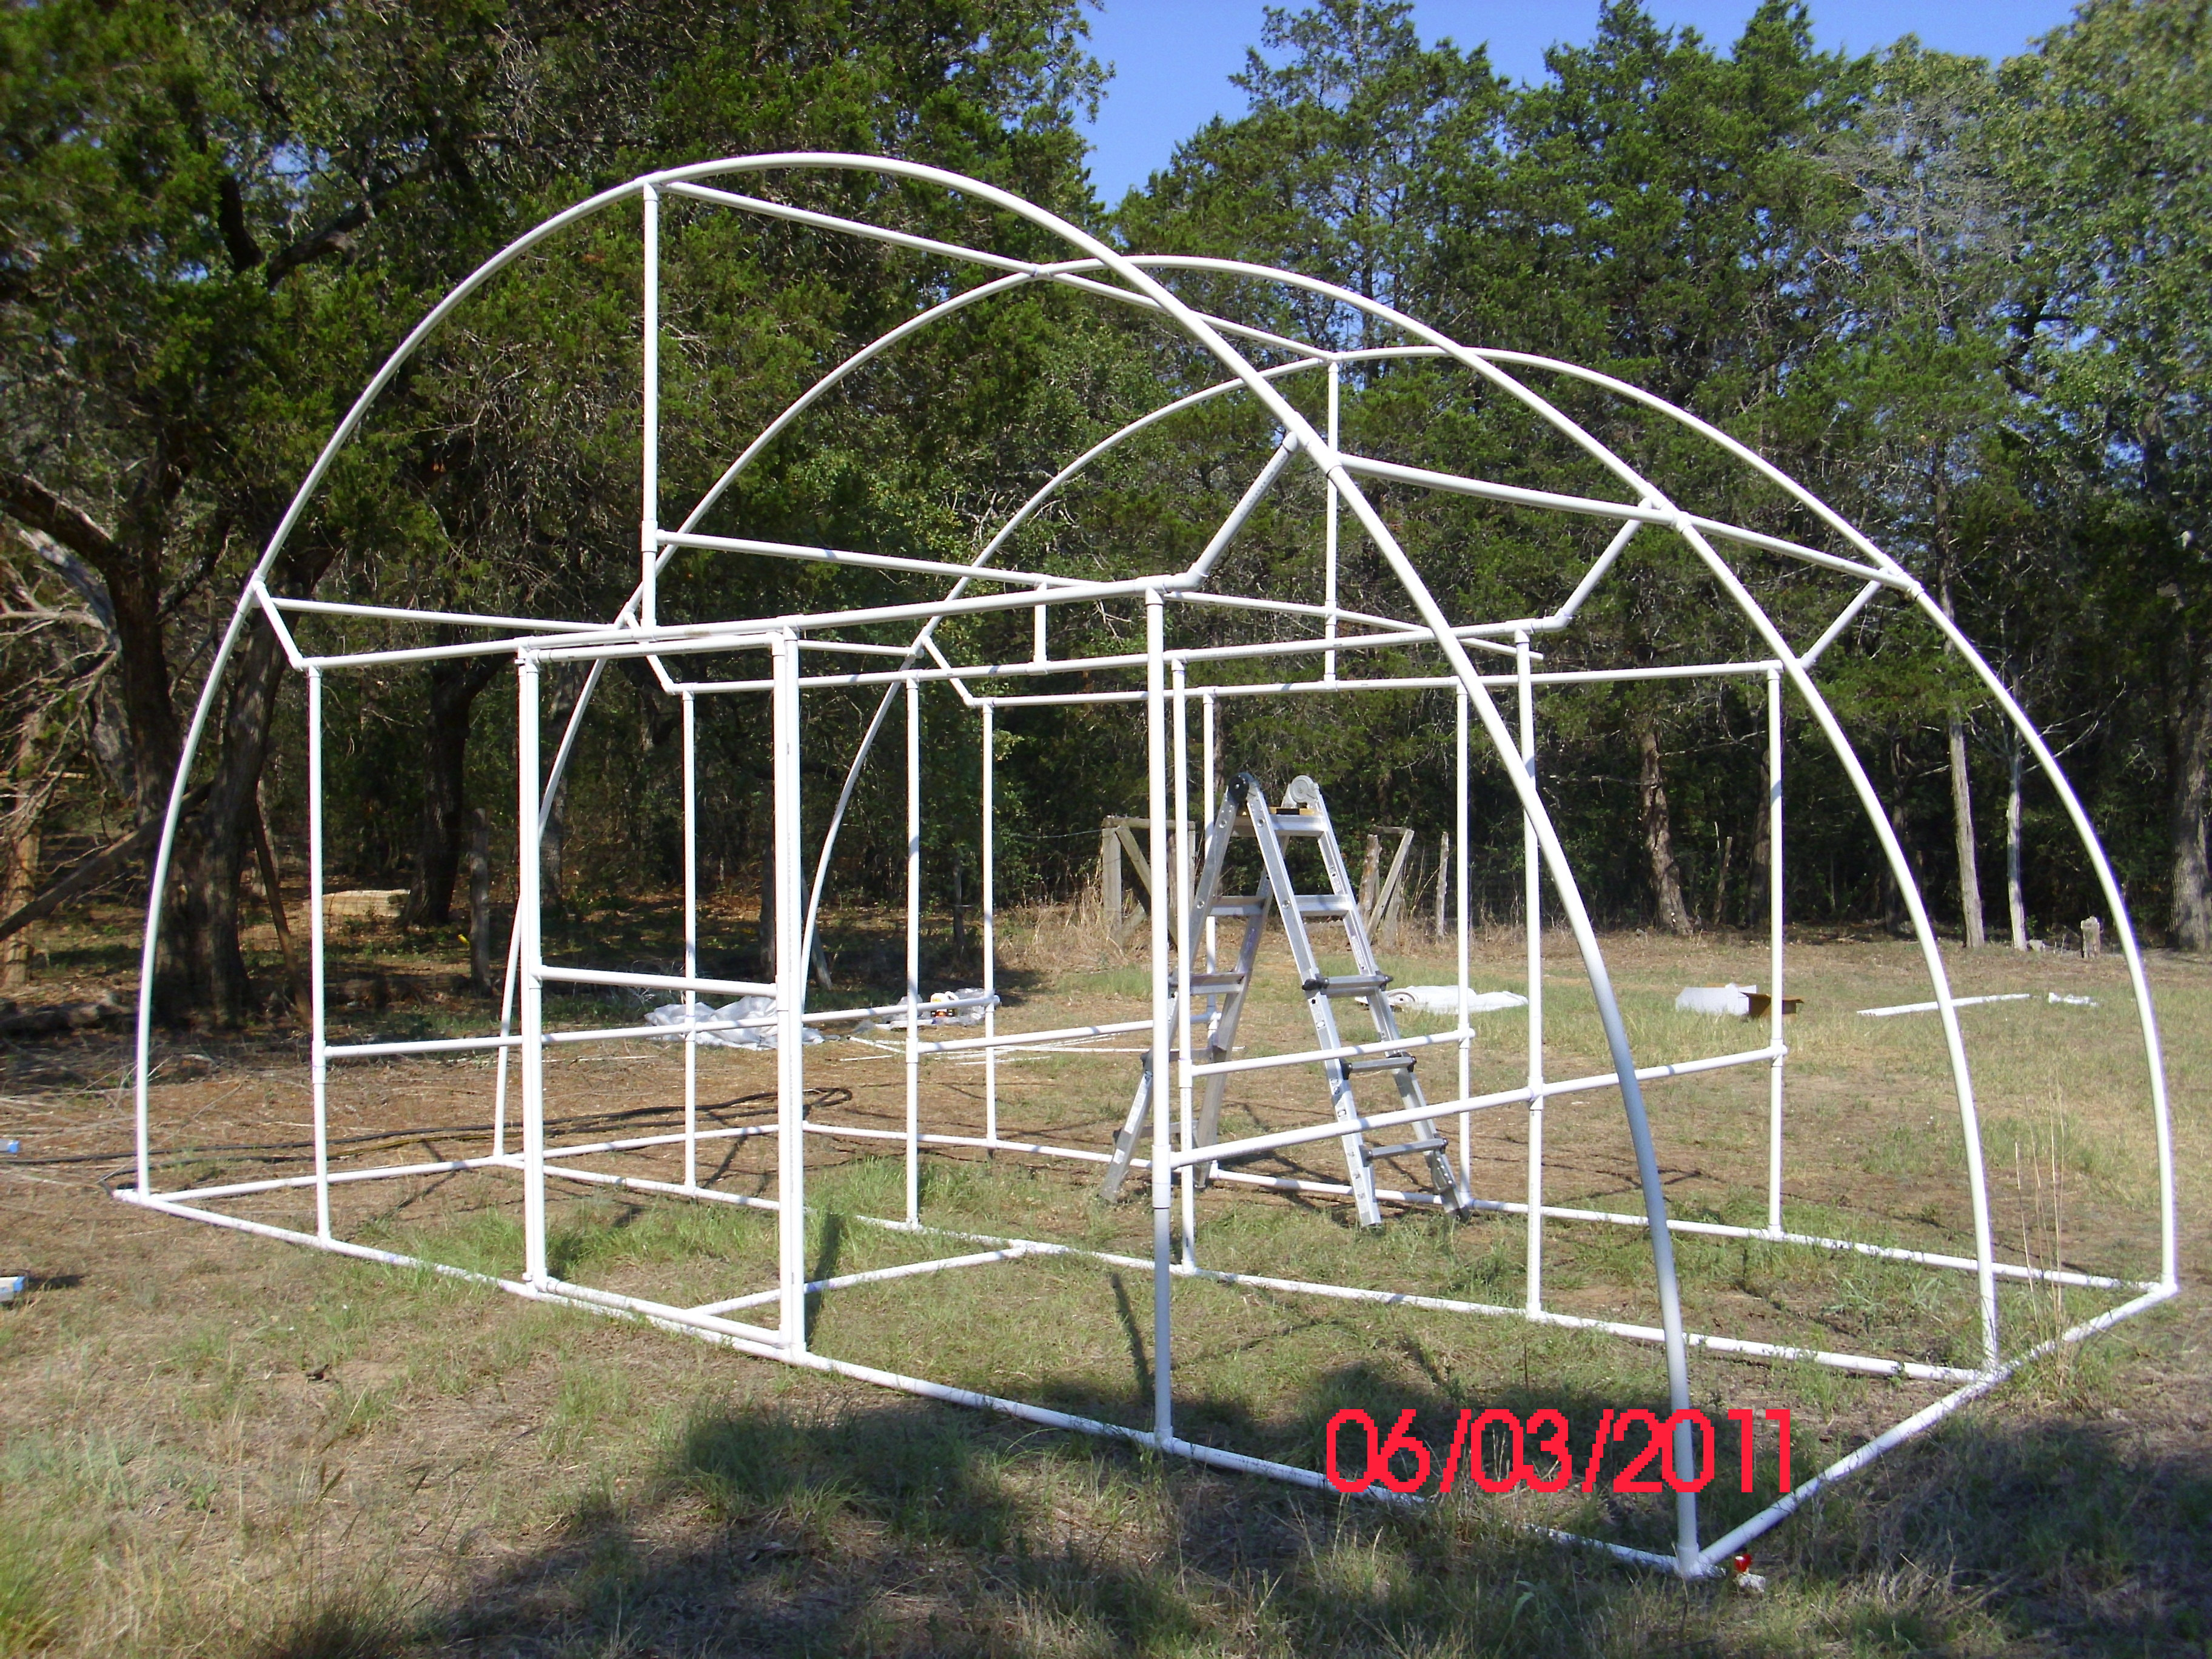 pictures of a build it yourself pvc dome greenhouse